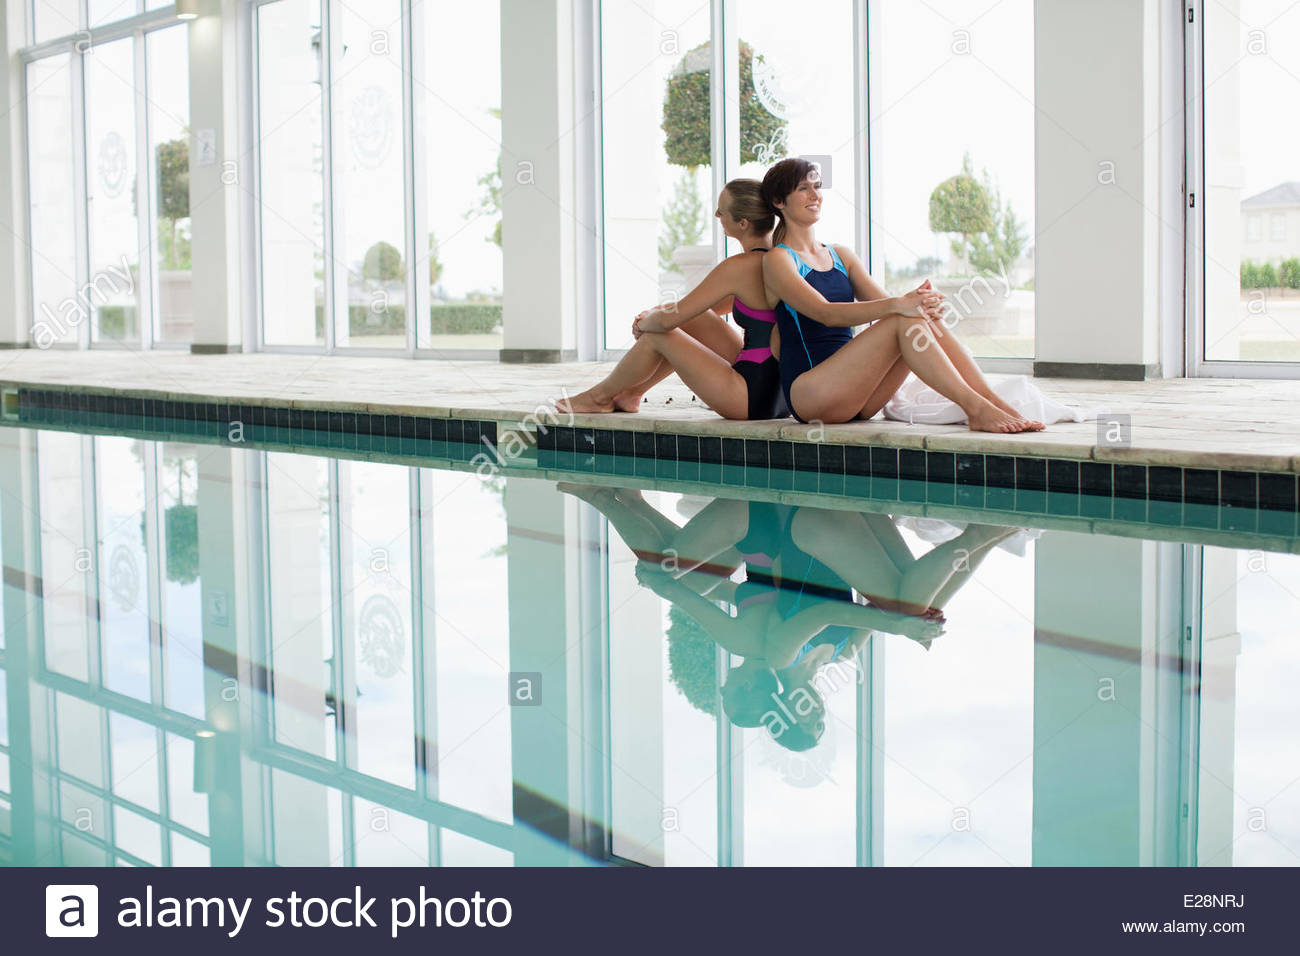 Two women in bathing suits sitting poolside - Stock Image